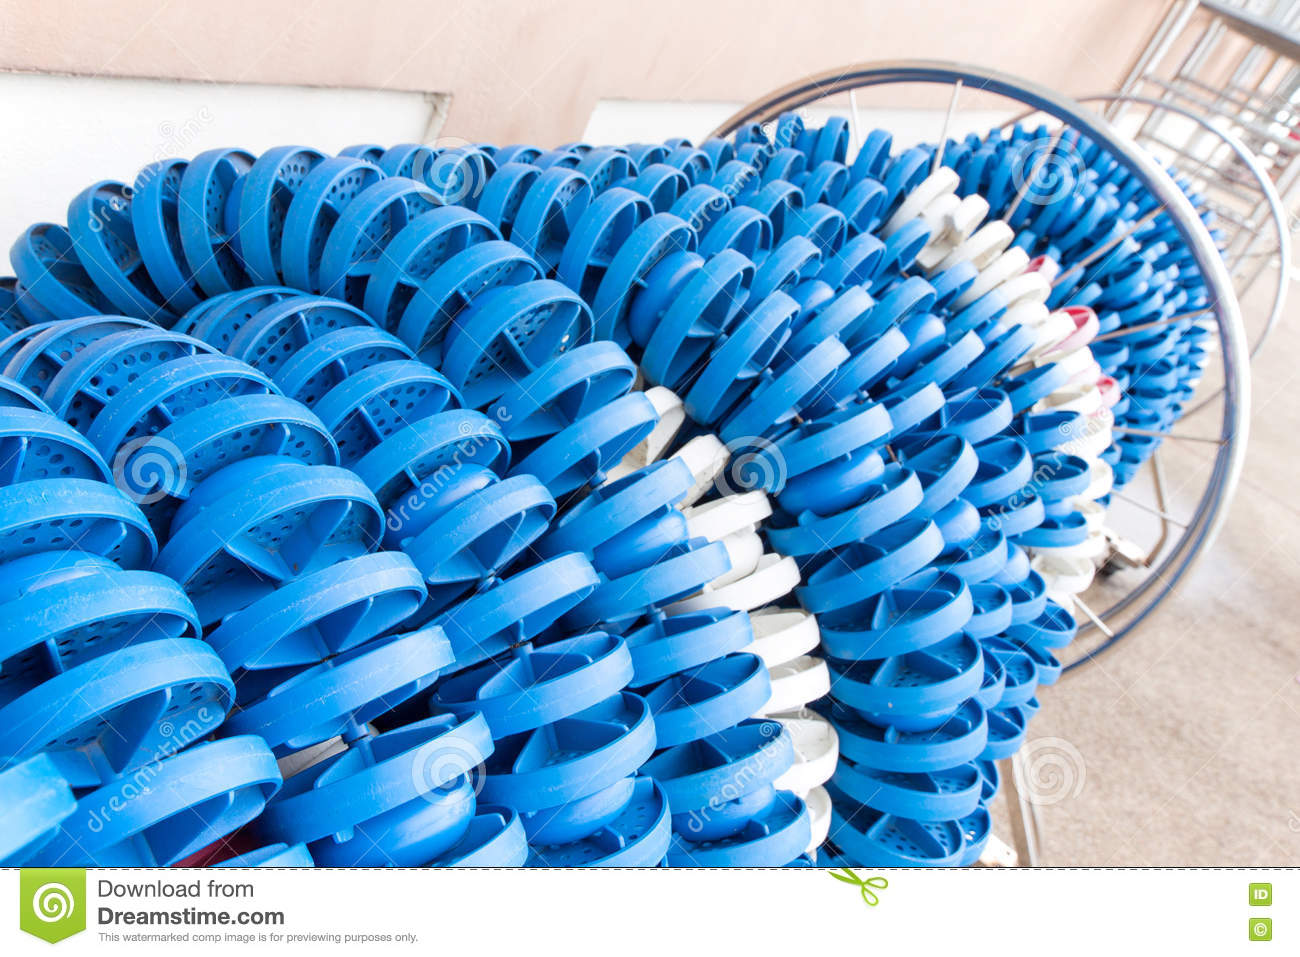 Lane rope storage swim stock image. Image of roll, spool ...